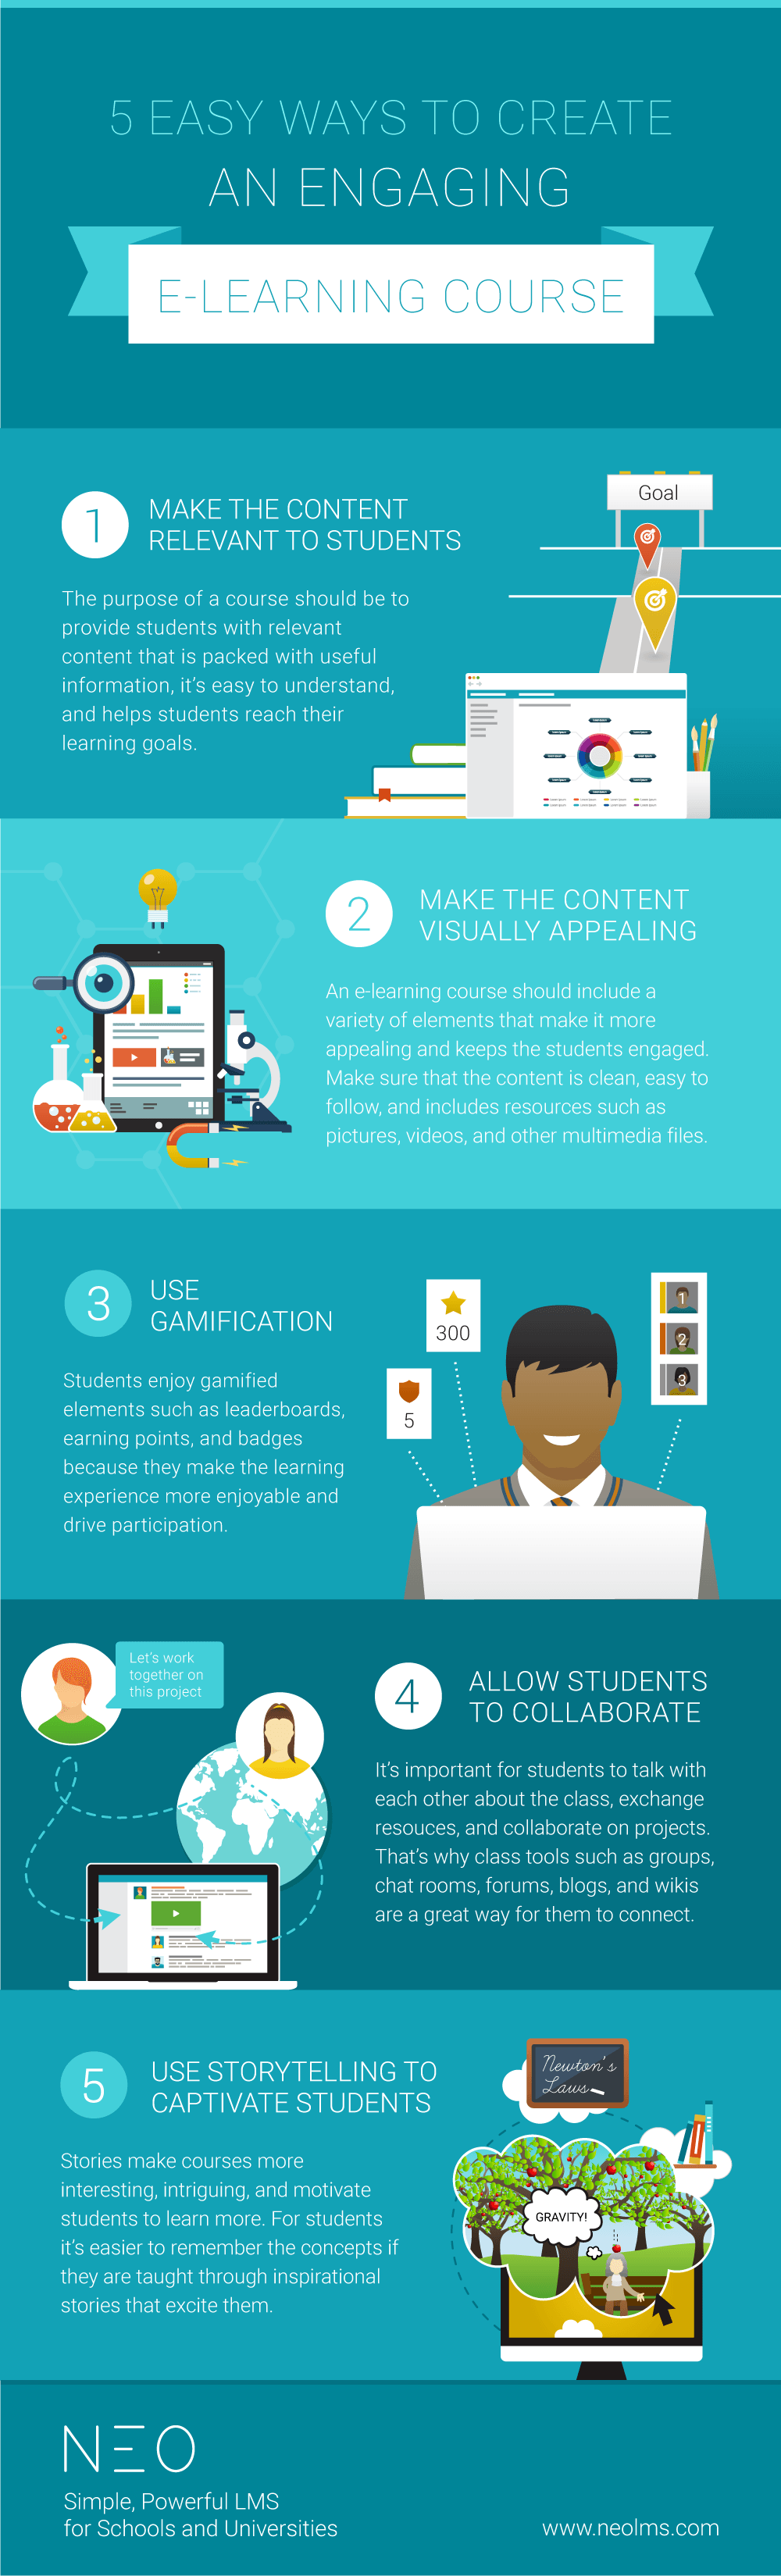 5 Easy Ways to Create an Engaging eLearning Course Infographic